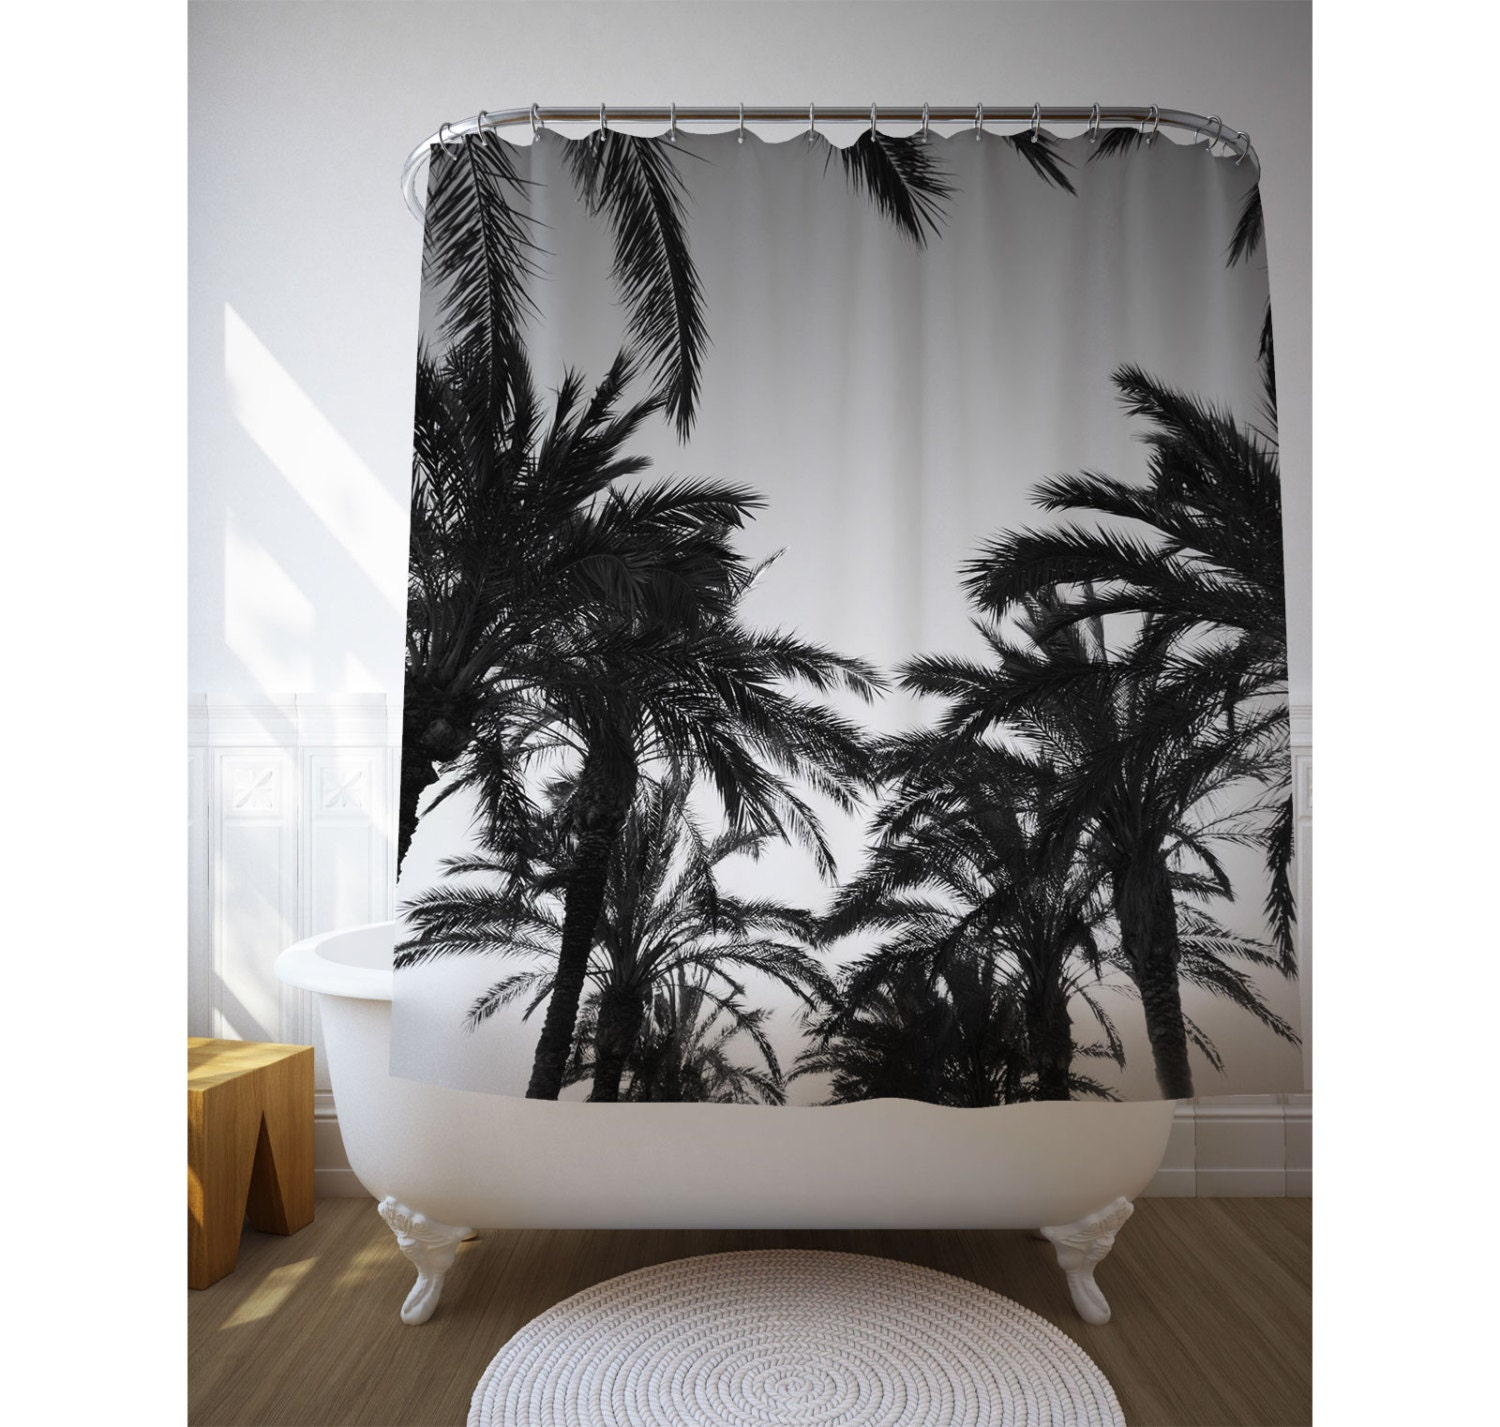 Black And White Palm Trees Shower Curtain Tropical Shower Art Beach House Decor Bath Decoration Personalized Bath